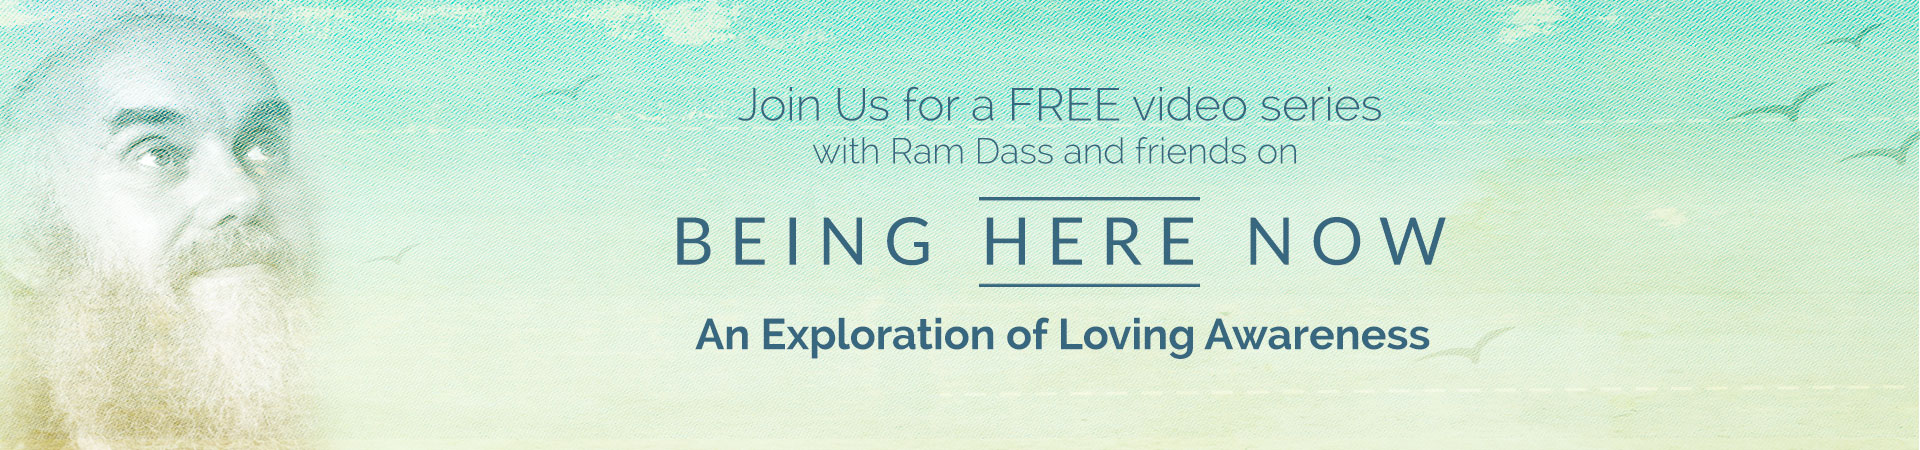 Being Here Now: FREE Video Series with Ram Dass